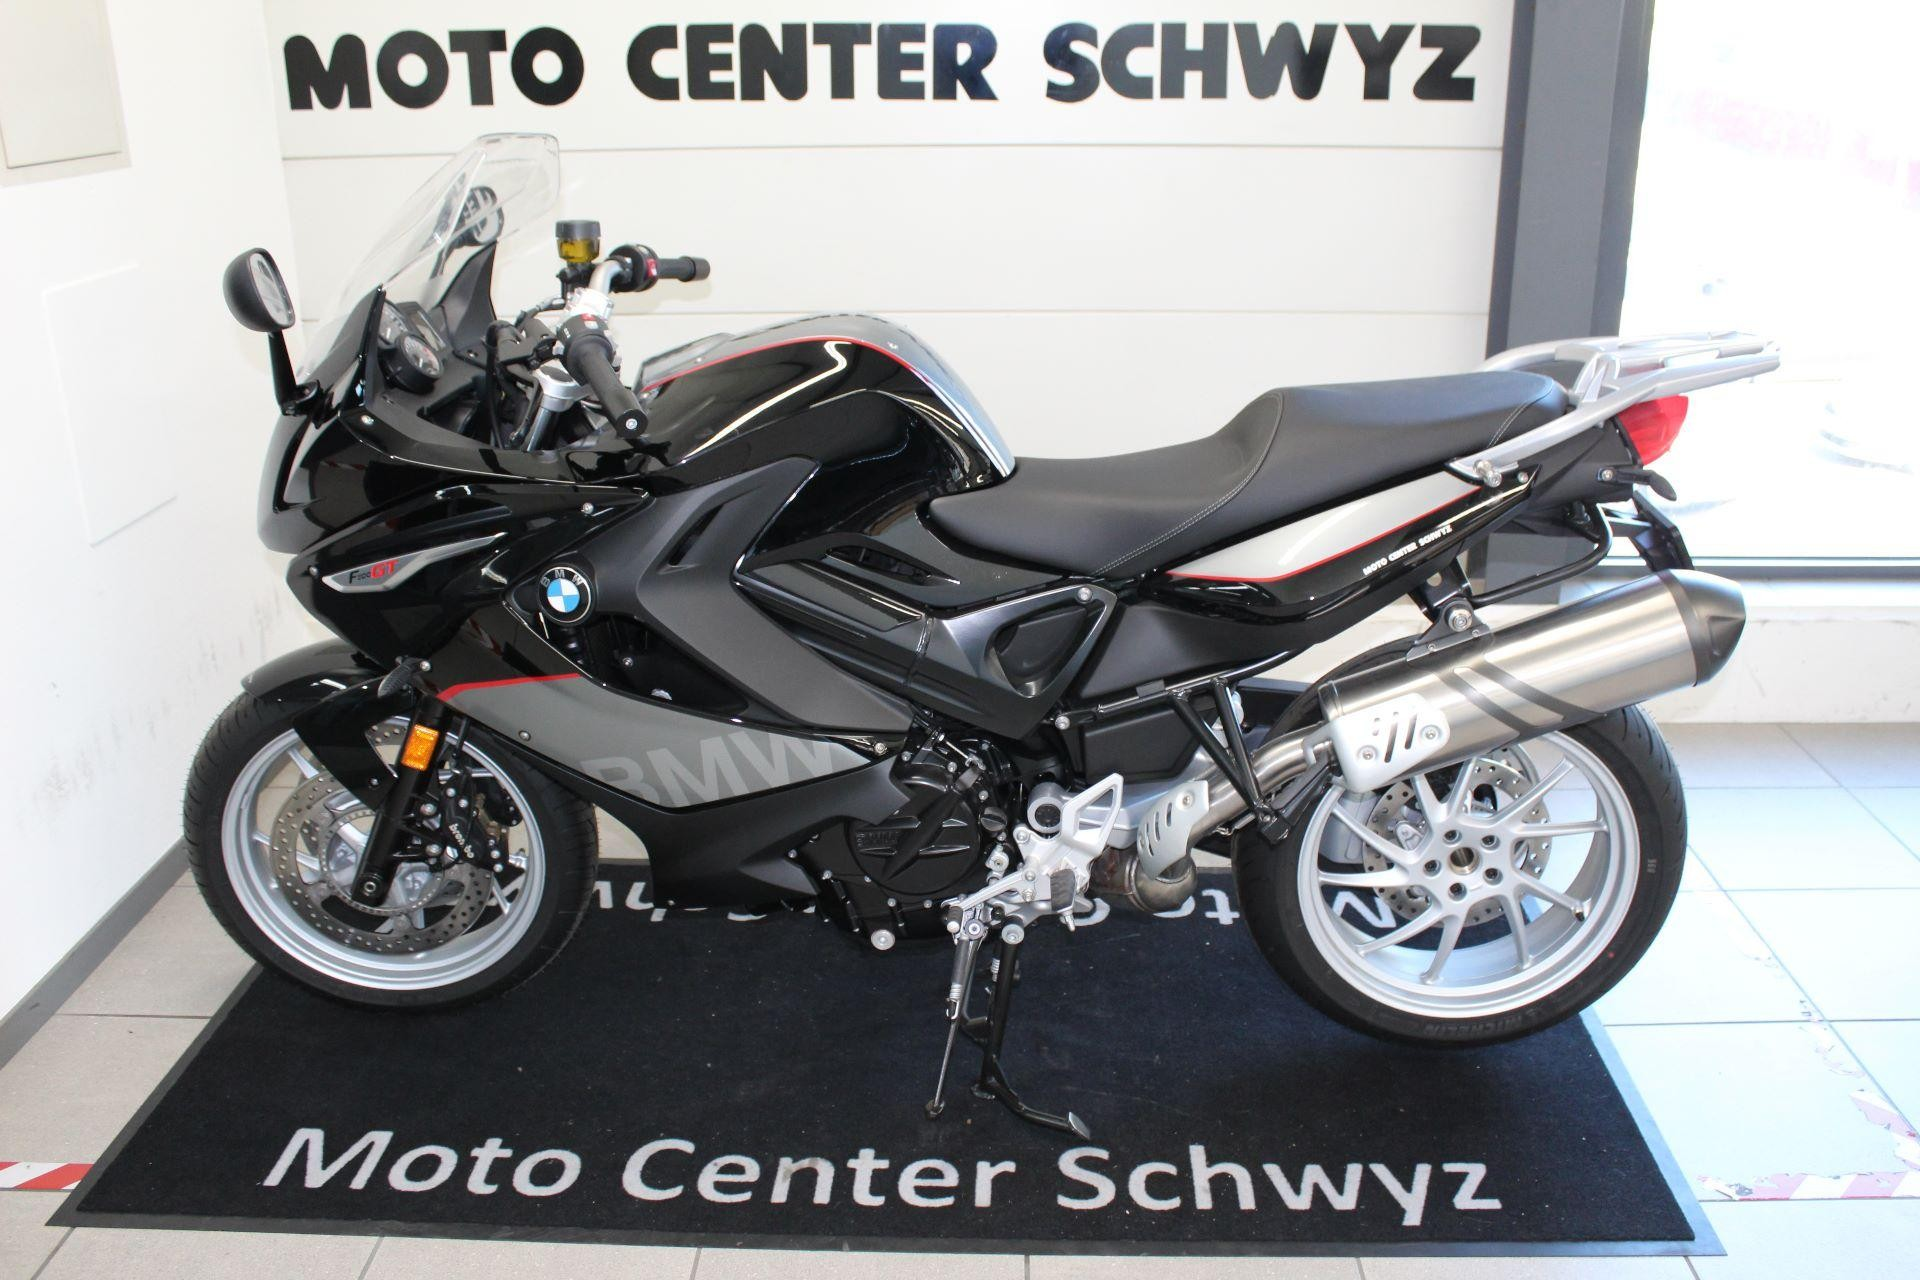 moto occasions acheter bmw f 800 gt moto center schwyz ag seewen schwyz. Black Bedroom Furniture Sets. Home Design Ideas